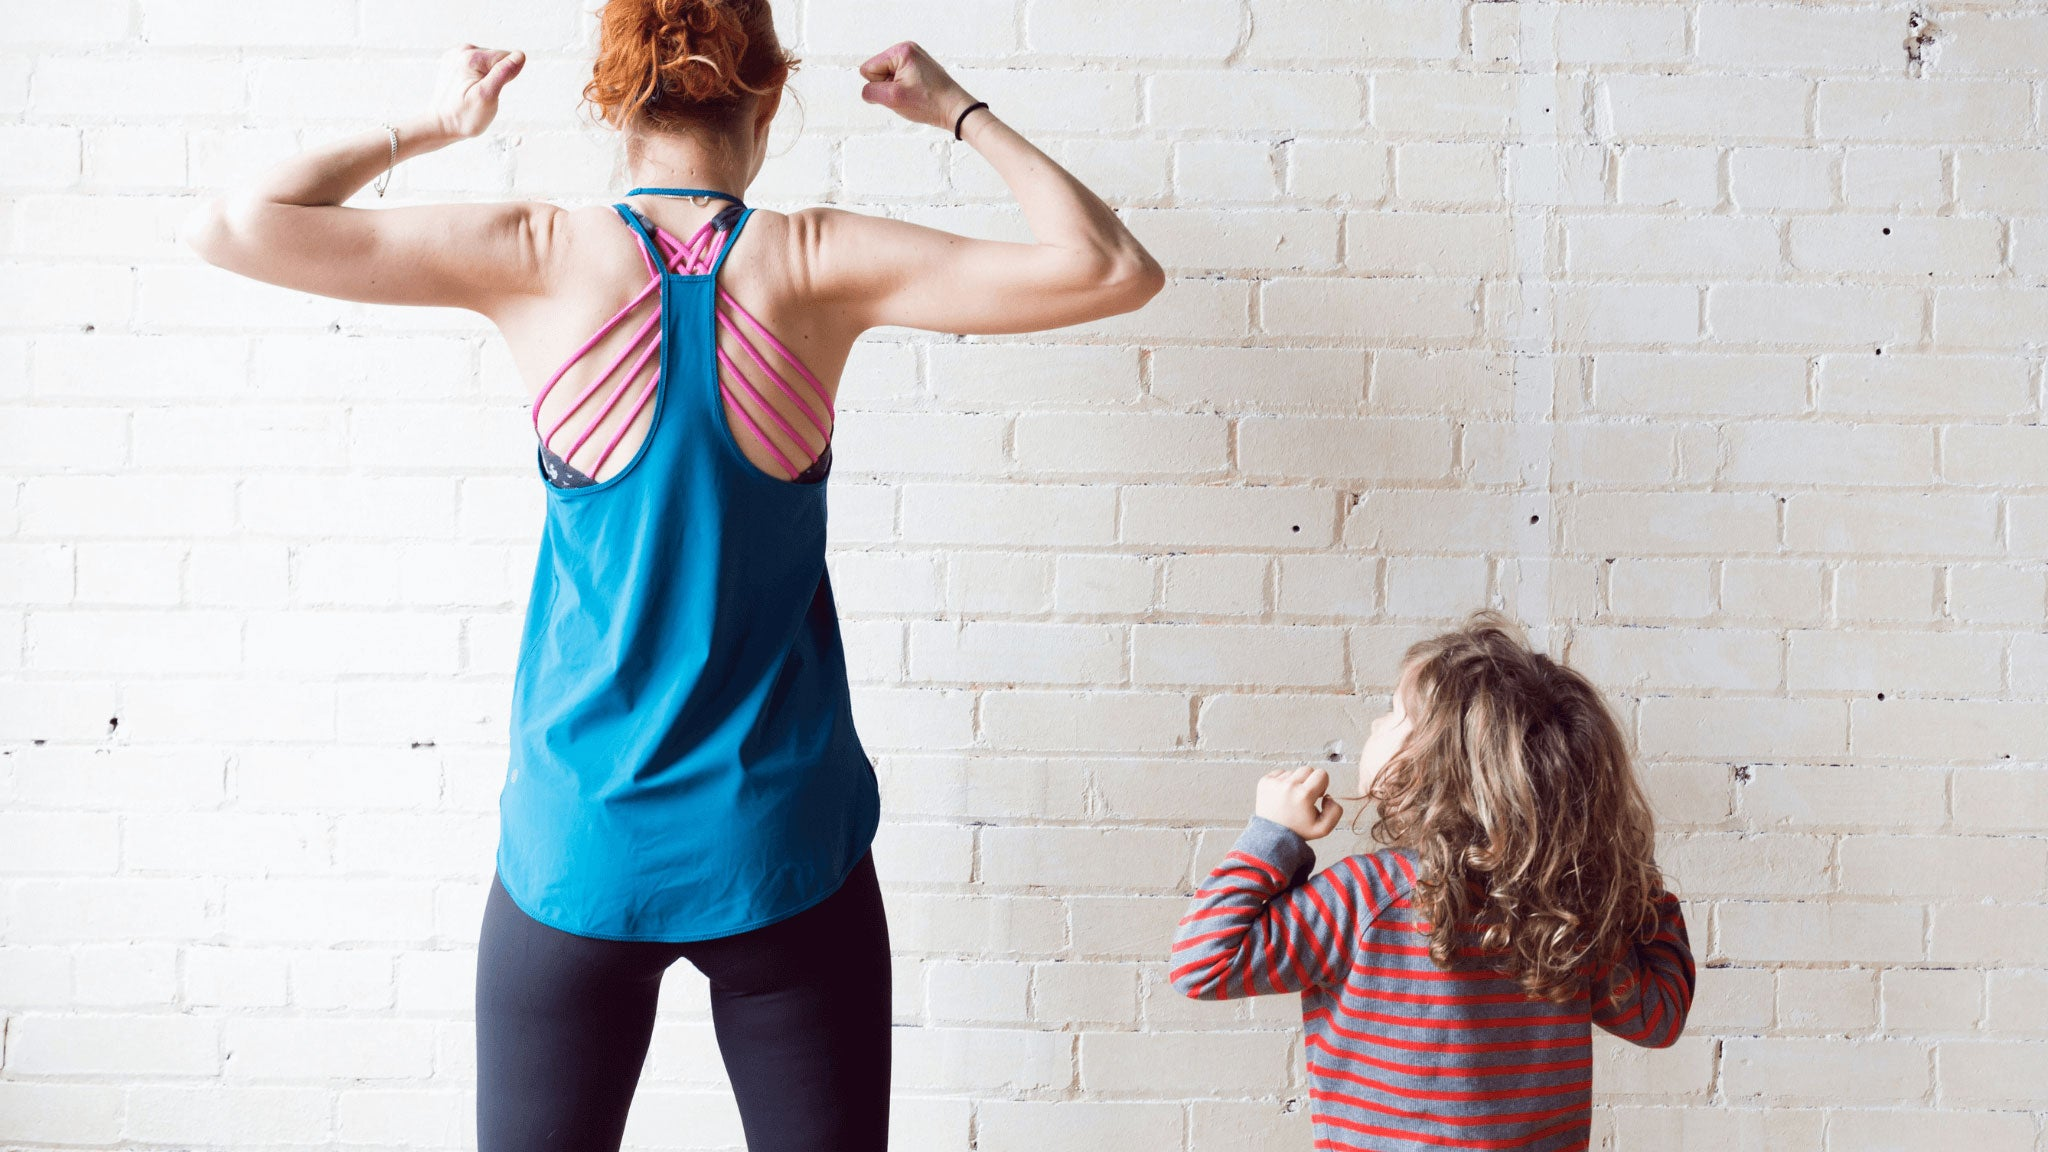 woman and girl wearing sportswear doing exercises on white brick wall background